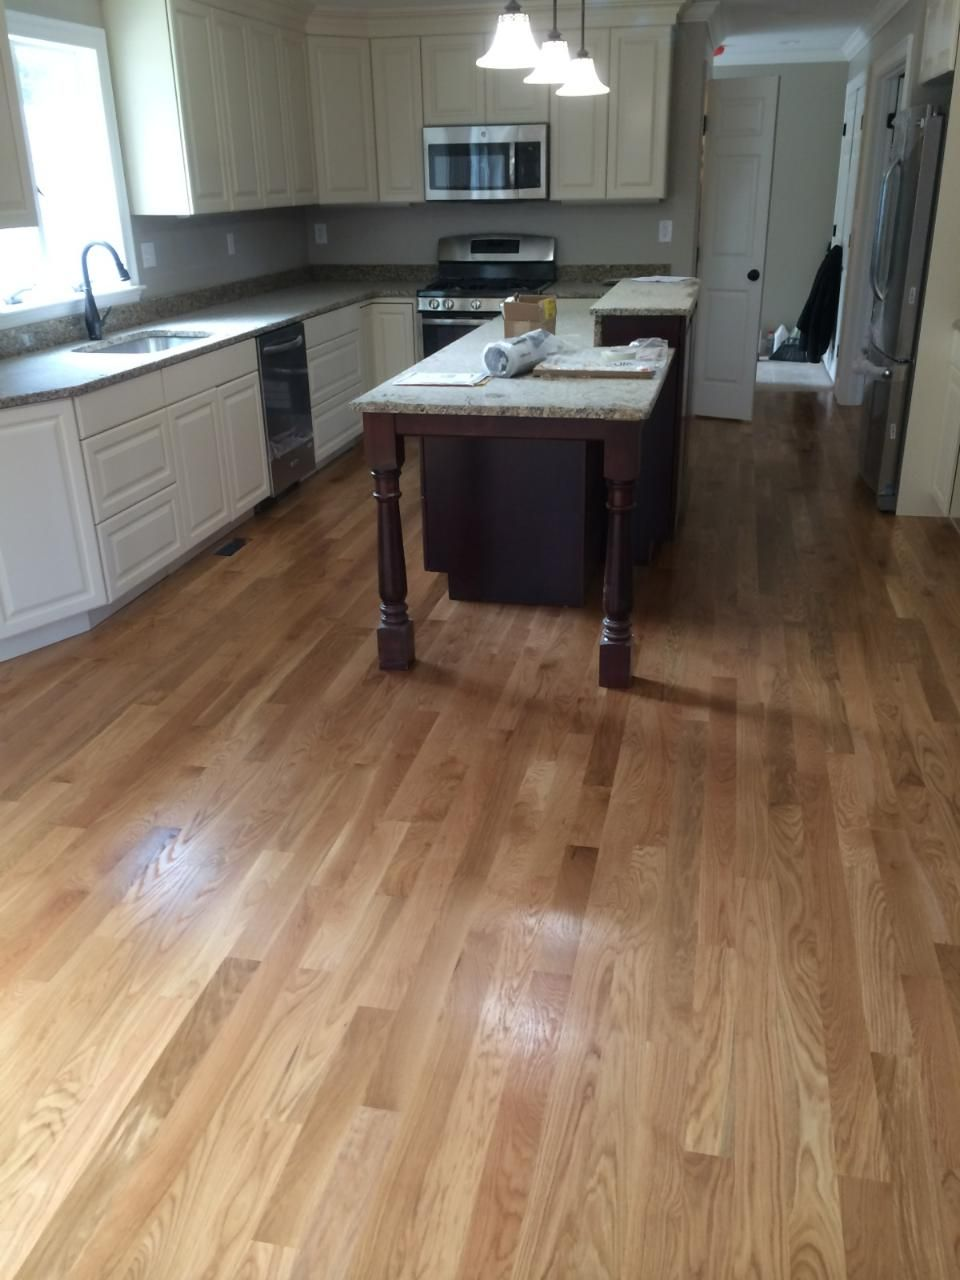 Shaw Floors Lucky Day 3 1 4 Solid Hickory Hardwood Flooring In Rustic Natural Hickory Hickory Wood Floors Solid Hardwood Floors Wood Floors Wide Plank